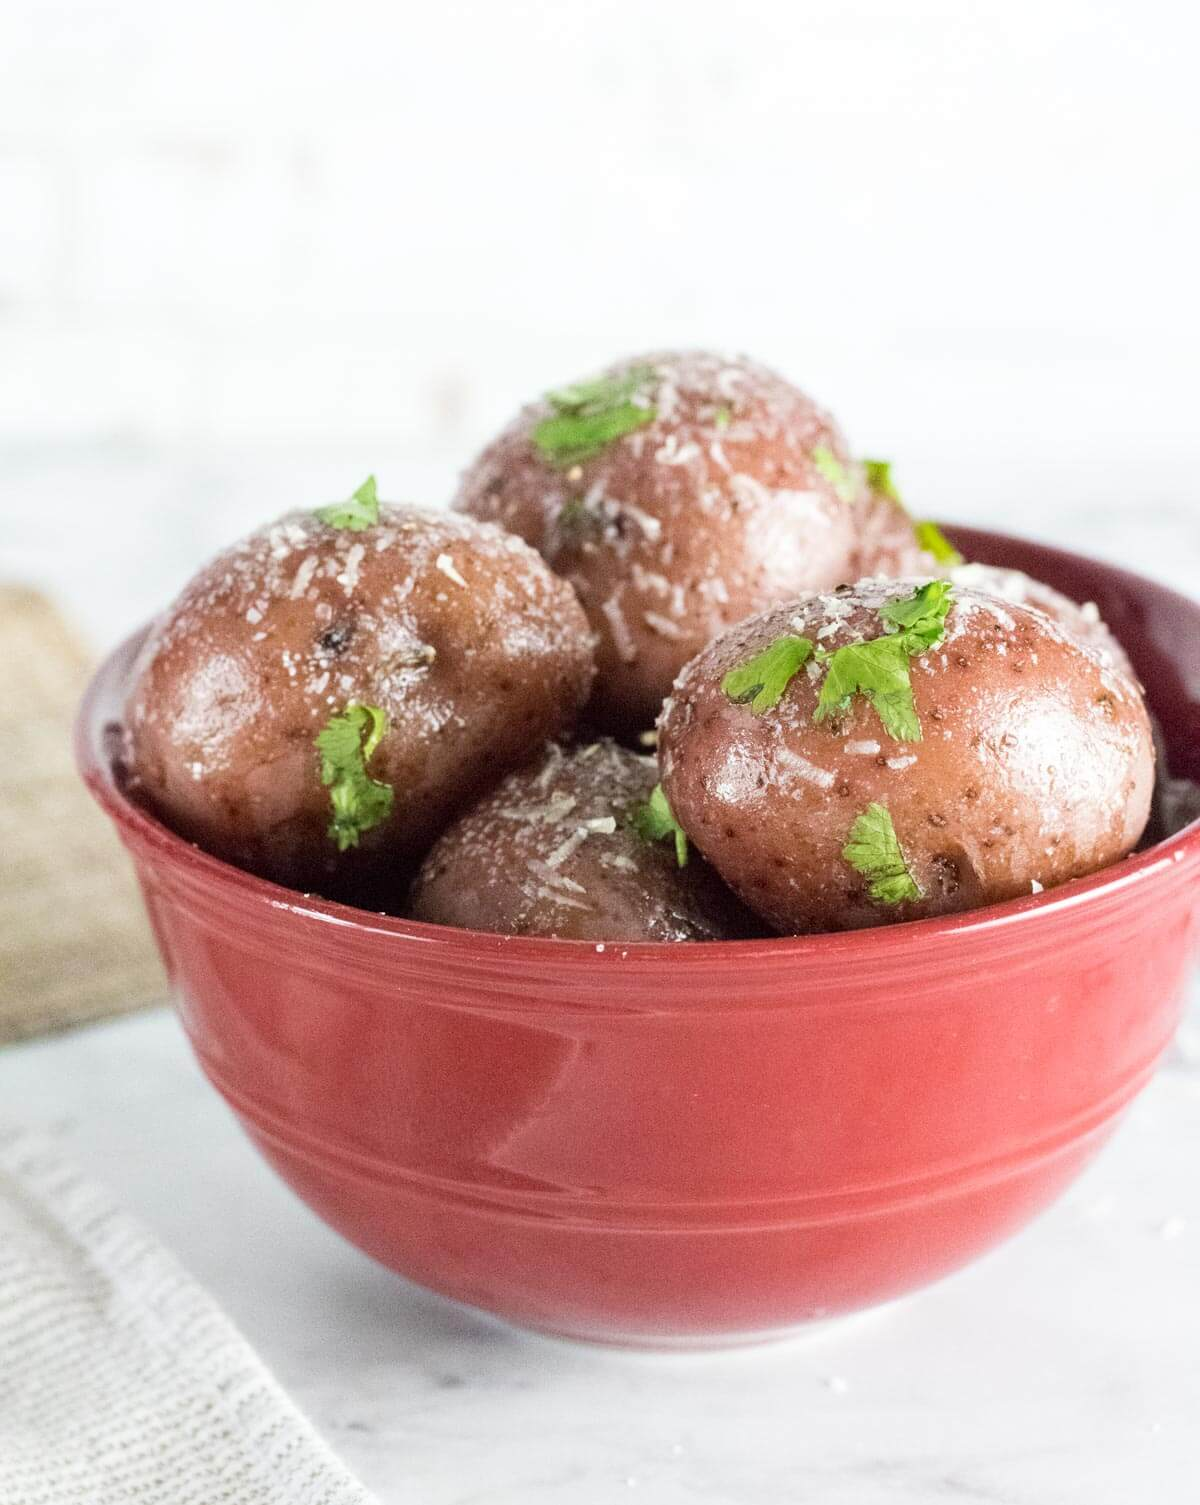 Boiled red potatoes in red bowl with Parmesan sprinkled on top.